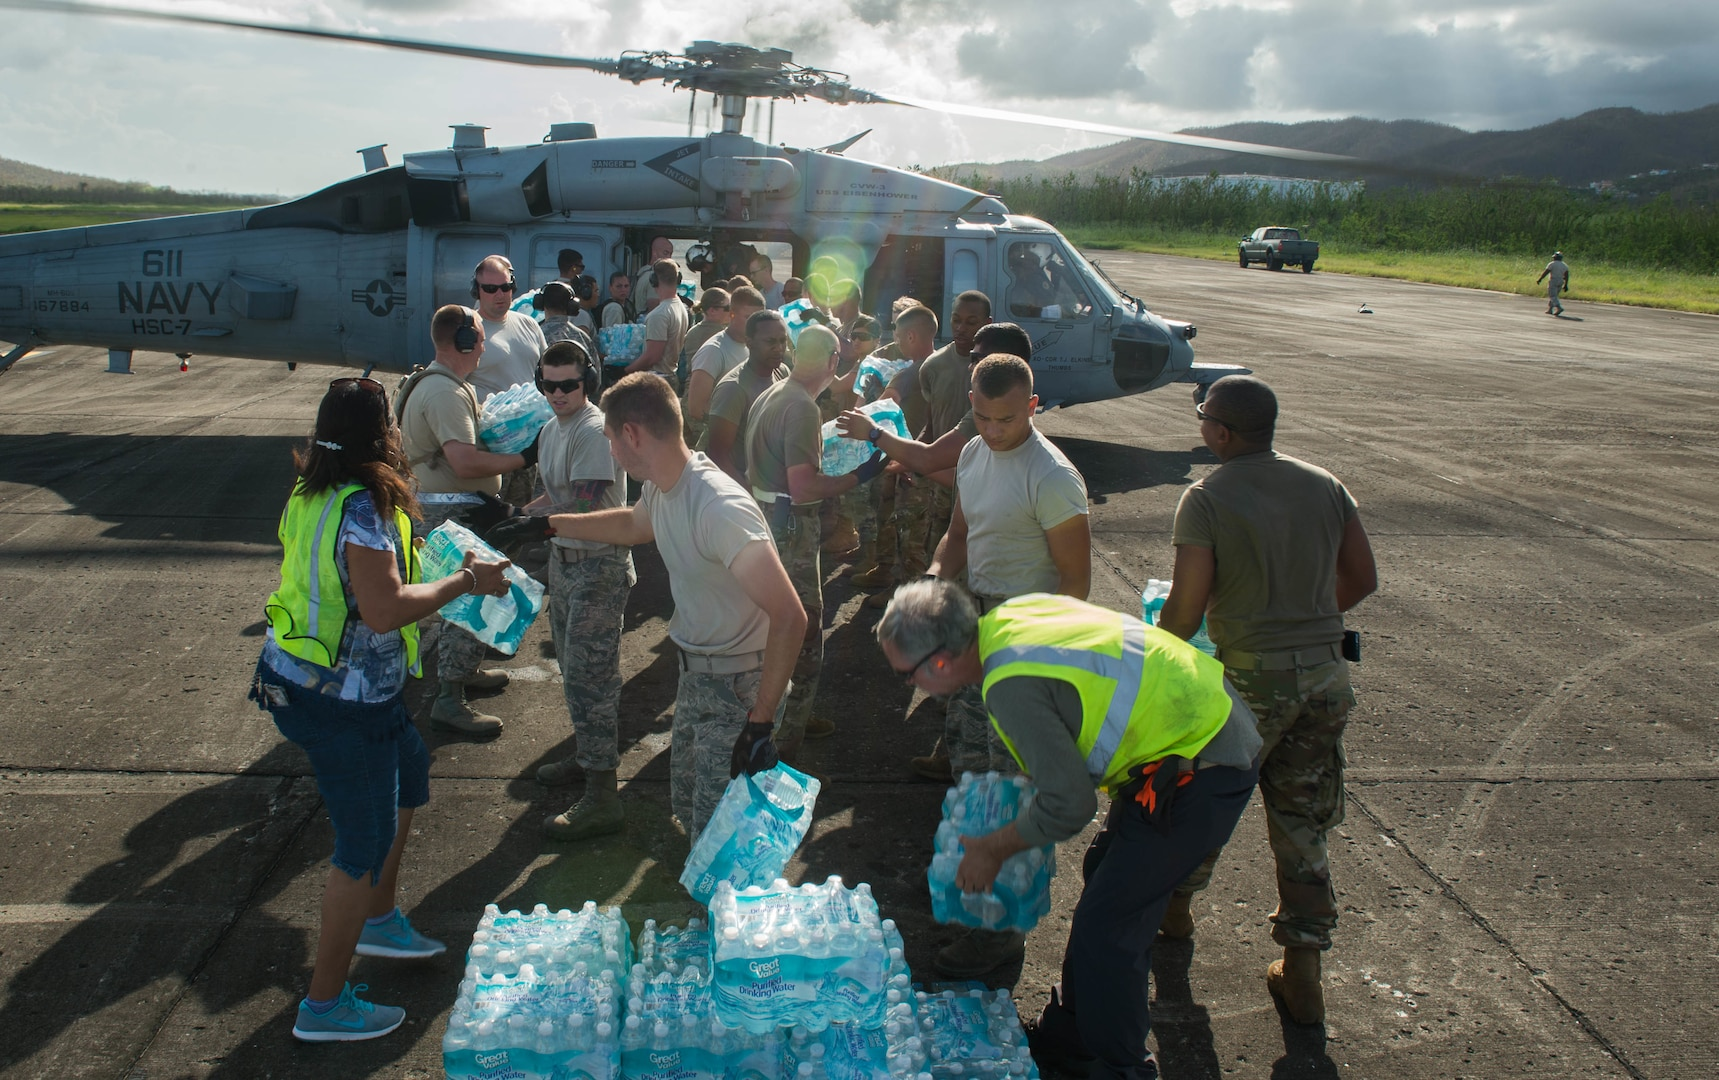 Airmen, soldiers and Federal Emergency Management Agency personnel load food and water onto a helicopter at Roosevelt Roads, Puerto Rico.